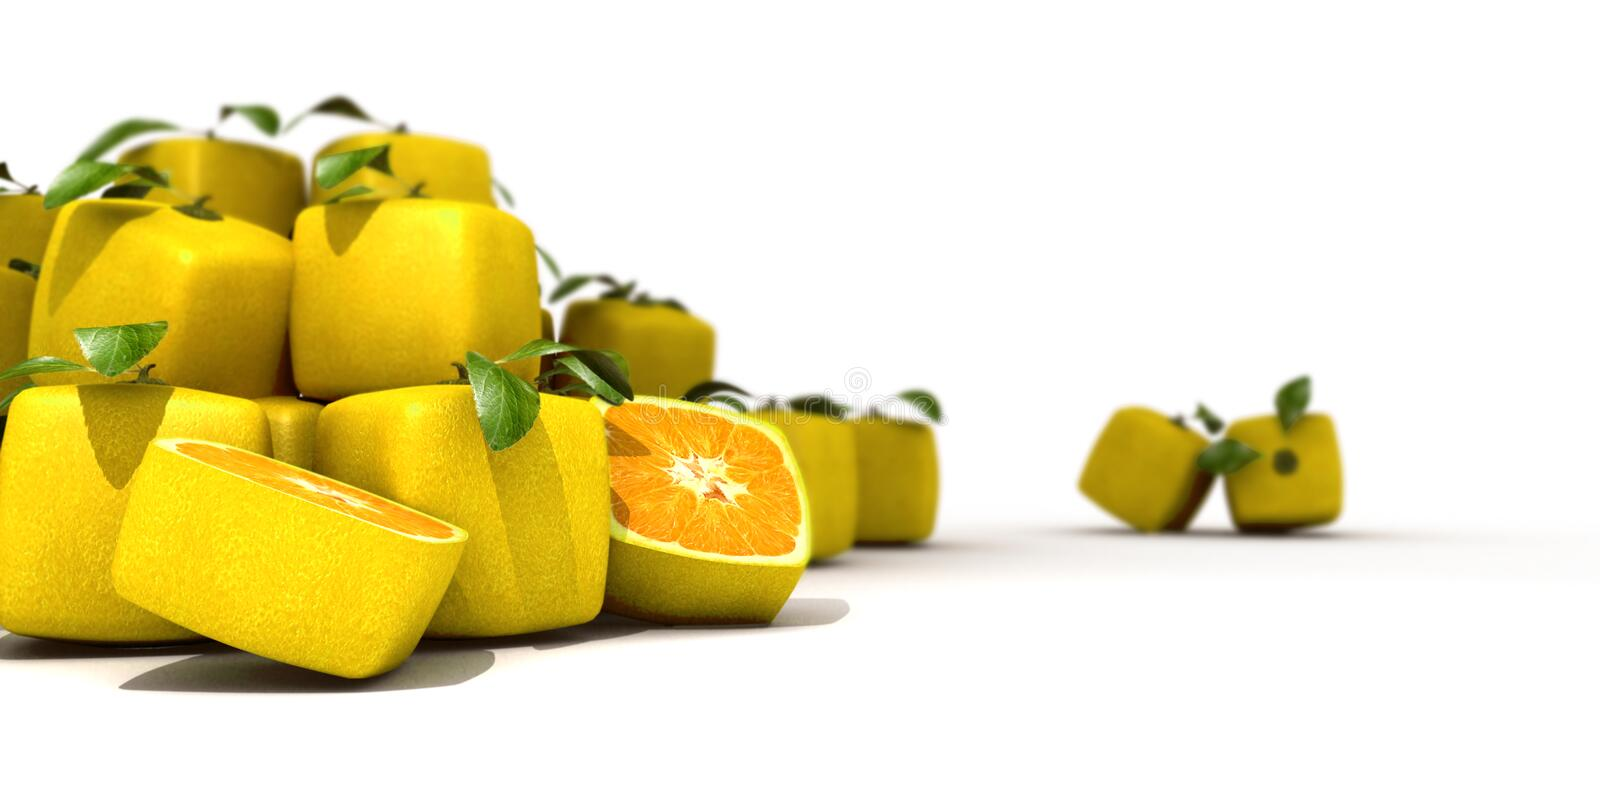 Cubic lemons vector illustration